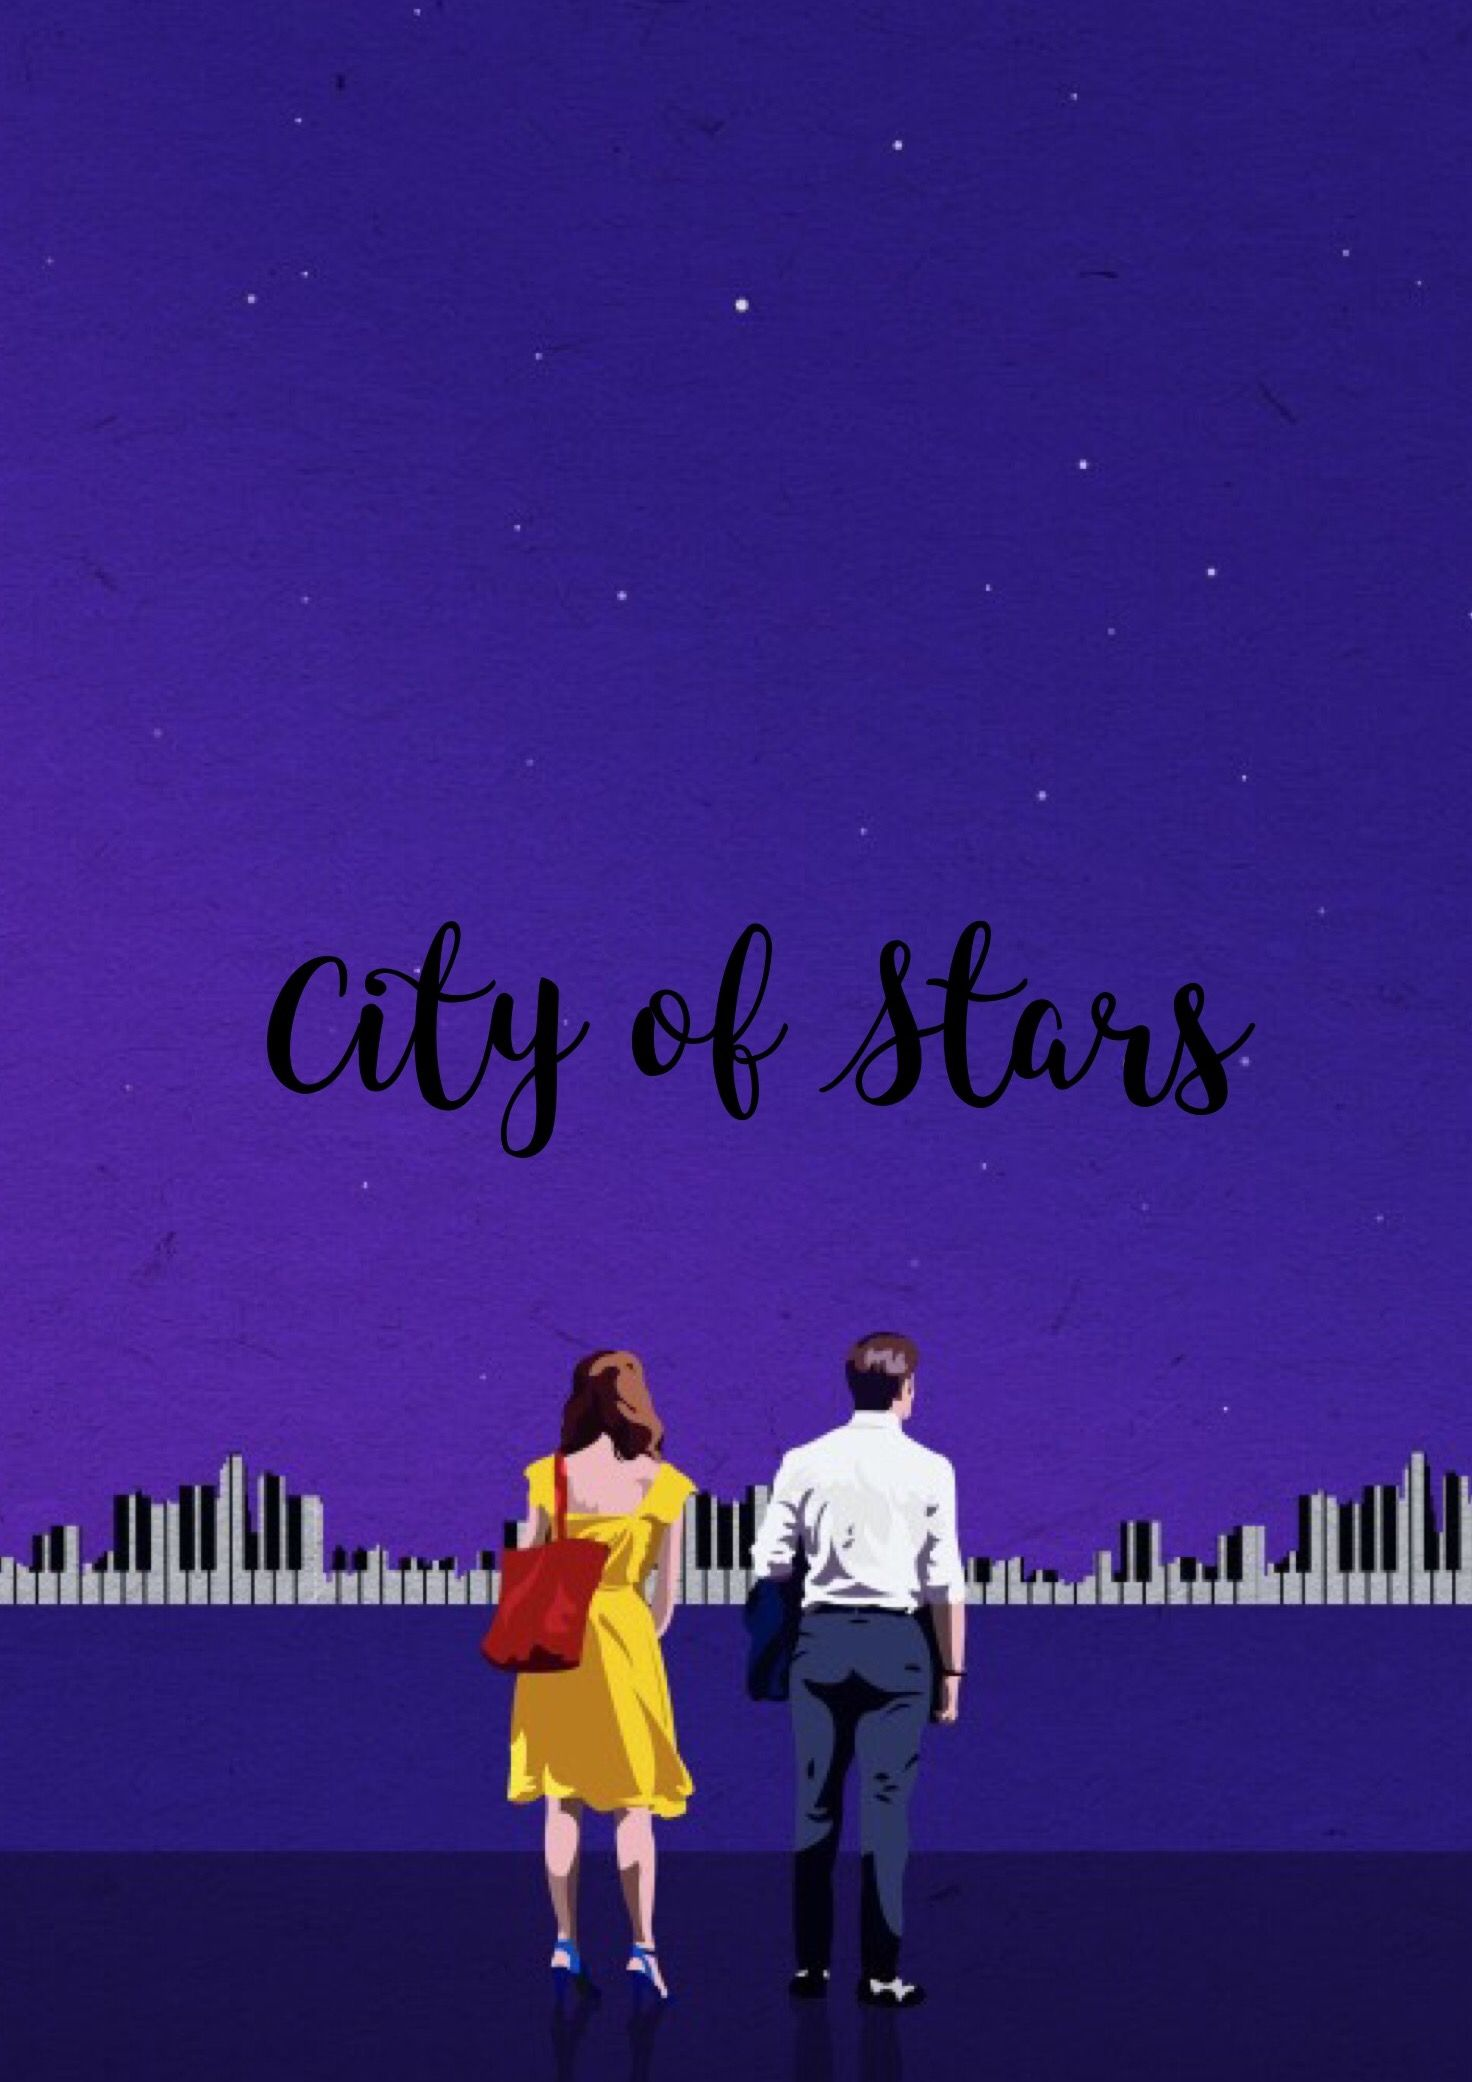 La La Land Wallpaper Back Ground For Iphone La La Land Movie